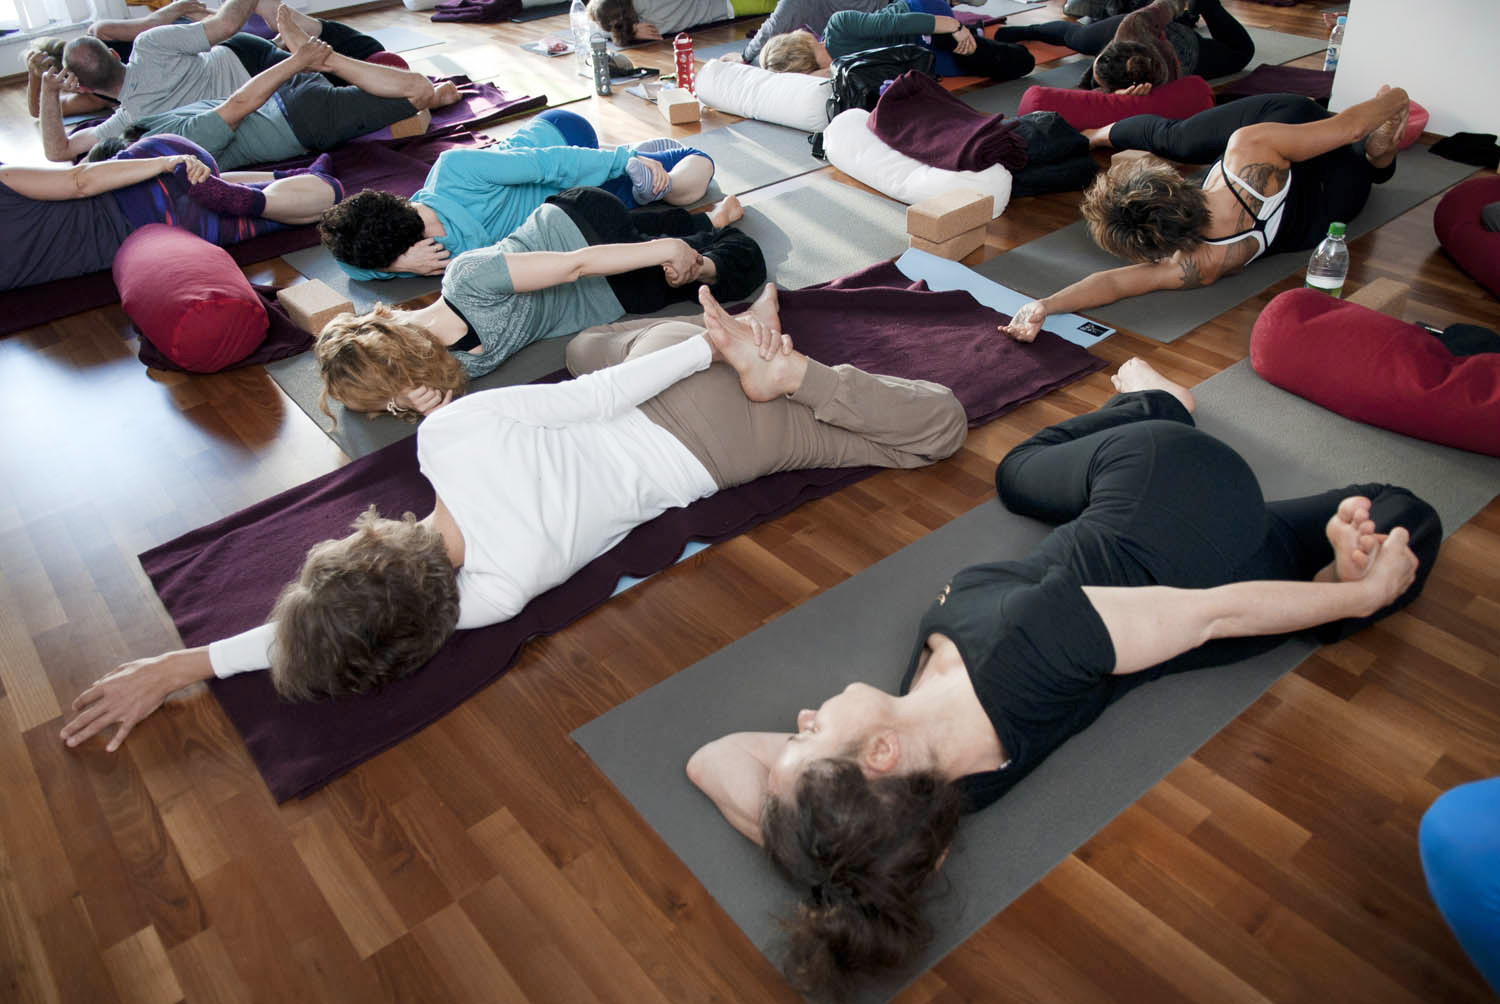 Yin Therapy - Yin Yoga & Anatomie Teacher Training I - Cat Tail.jpg